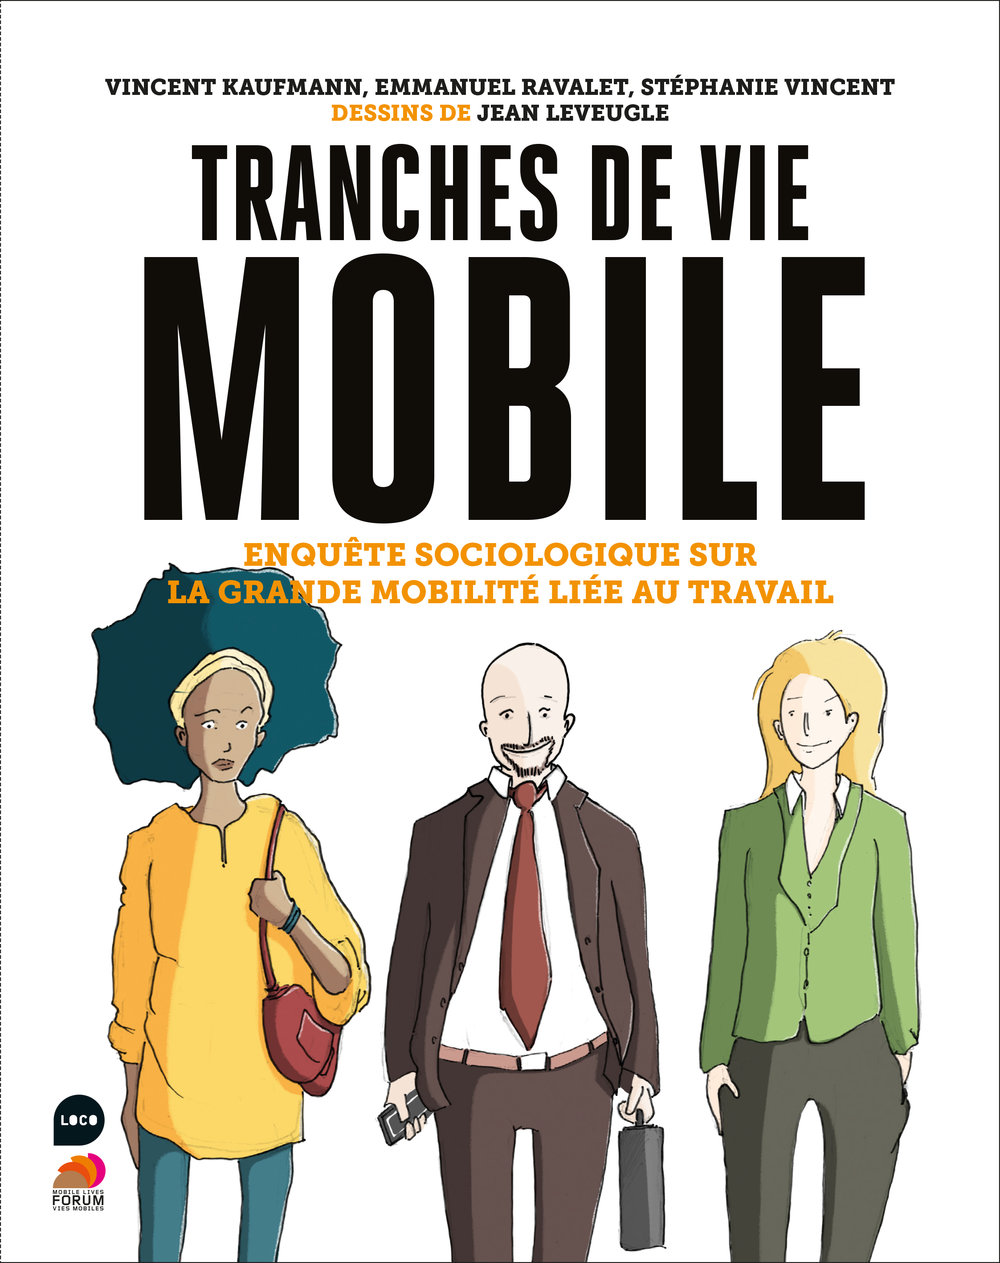 FVMTranches de vie mobile - Corporate Book Design for French Railways + Think TankSNCF / Forum Vies Mobiles.Client: SNCF / Forum Vies Mobiles / Éditions Loco